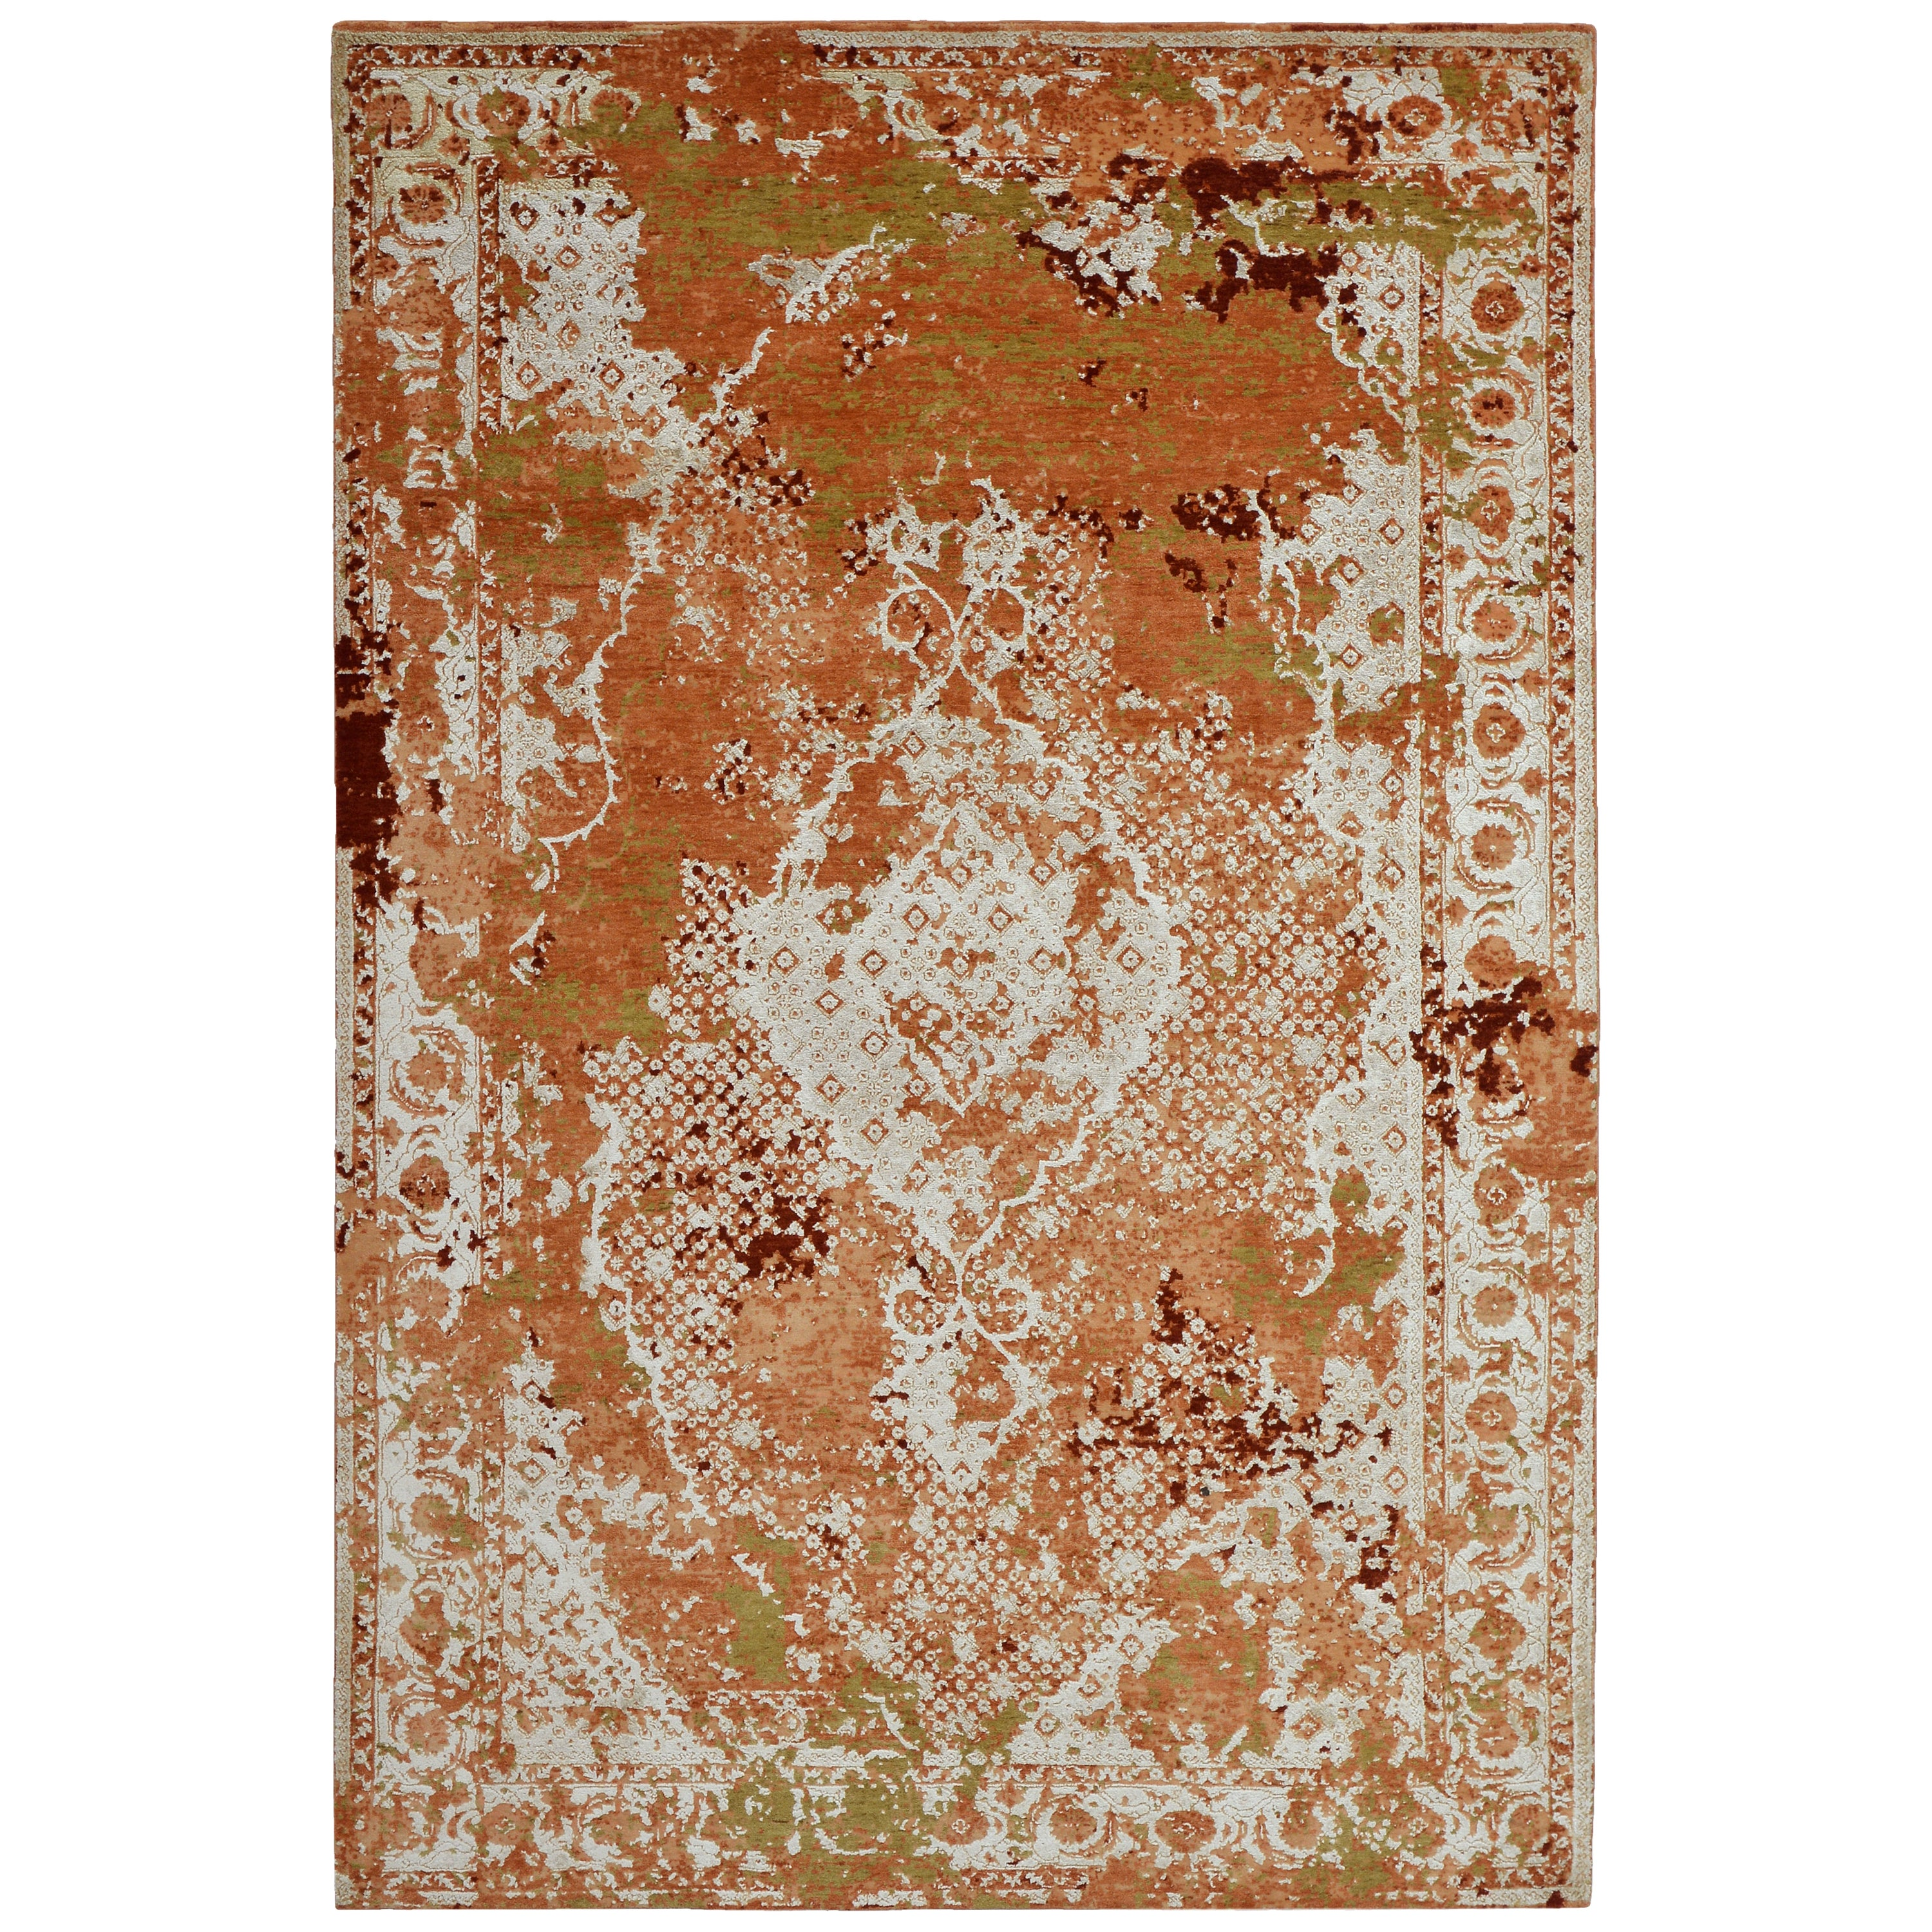 Modern Abstract Rug with Orange and Beige All-Over Pattern by Rug & Kilim